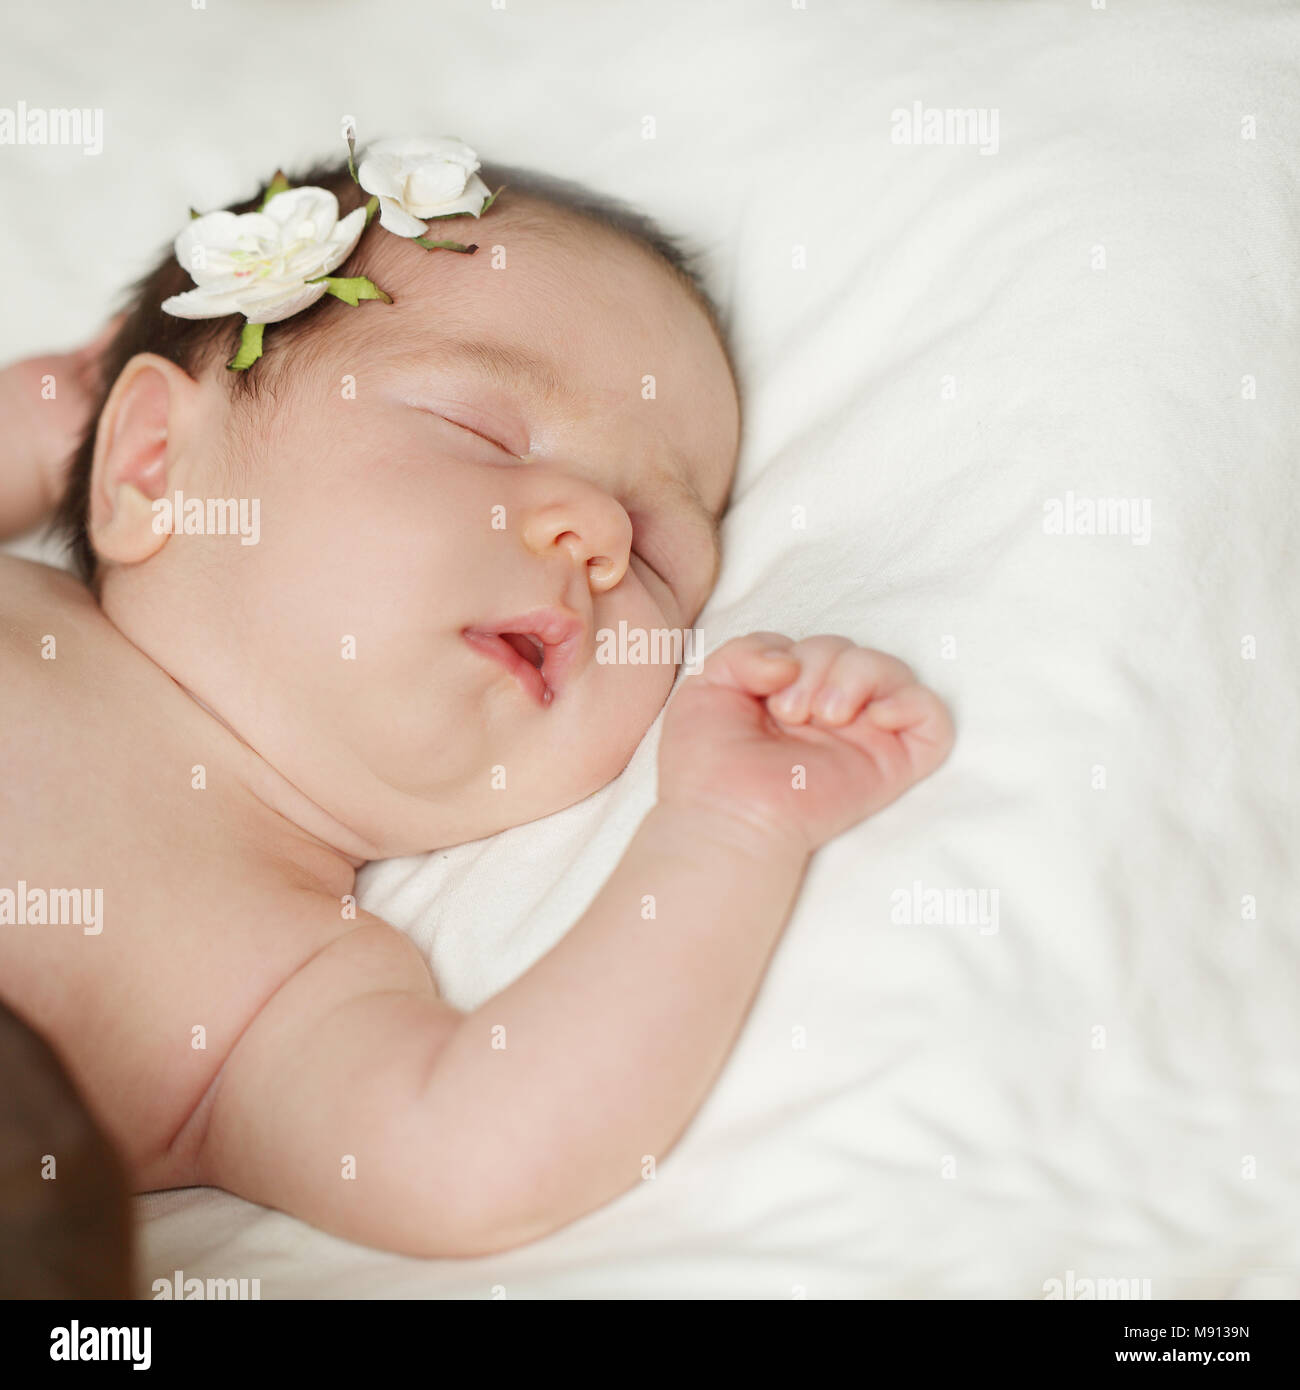 cute sleeping baby on white stock photo: 177660161 - alamy